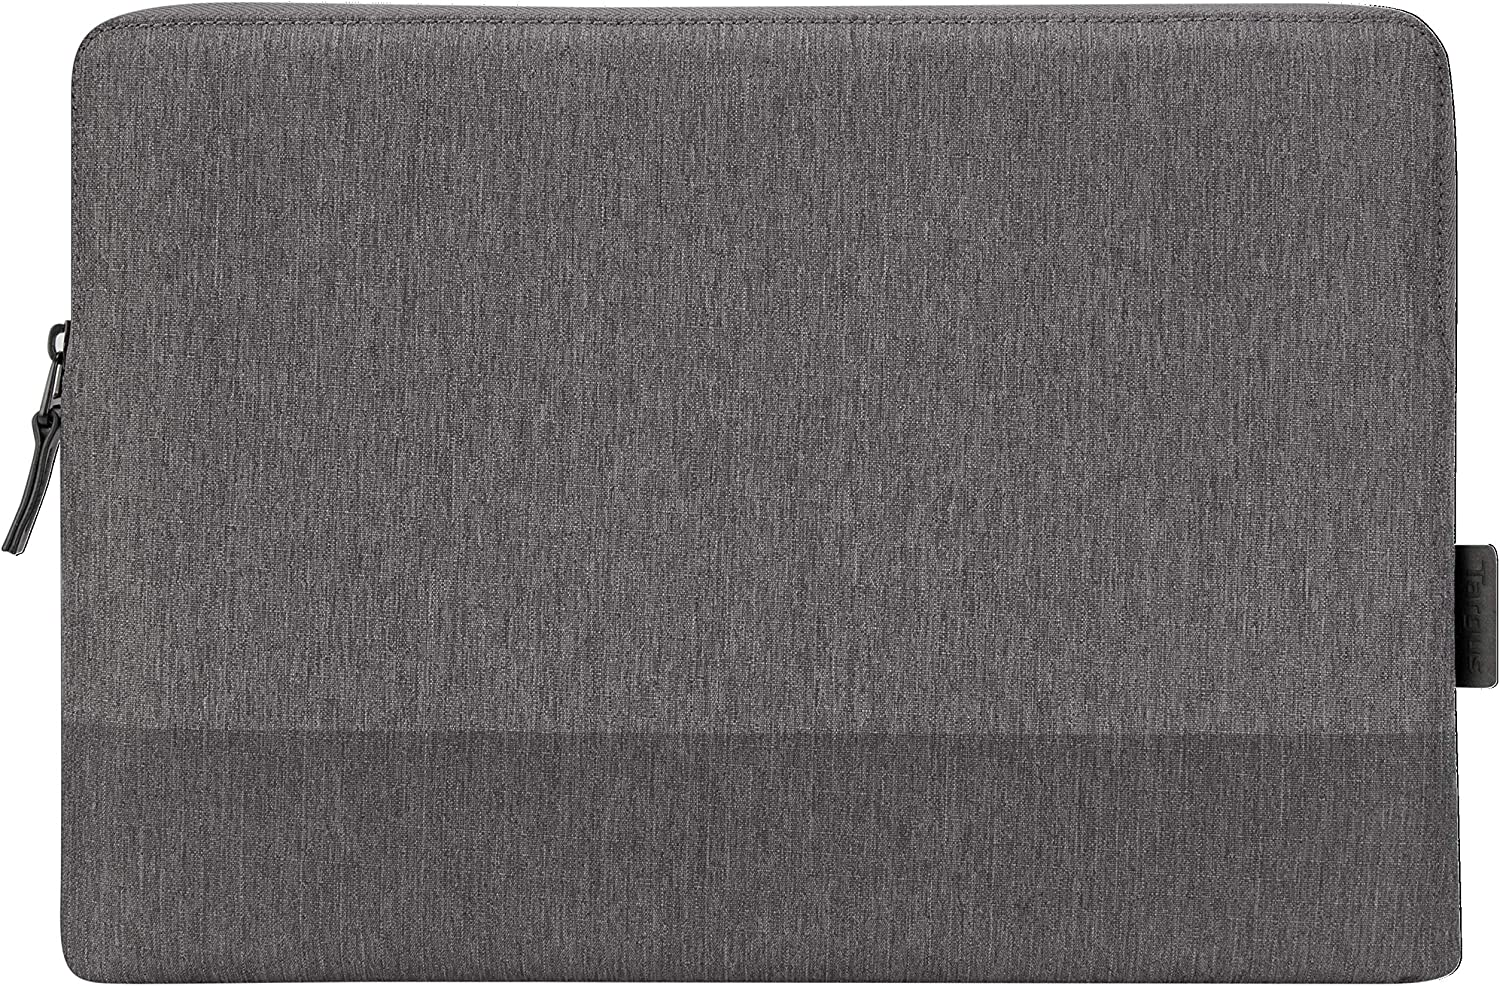 Targus CityLite Pro Modern Protective and Shockproof Sleeve for 13-Inch Laptop Sleeve, Gray (TSS97504GL)